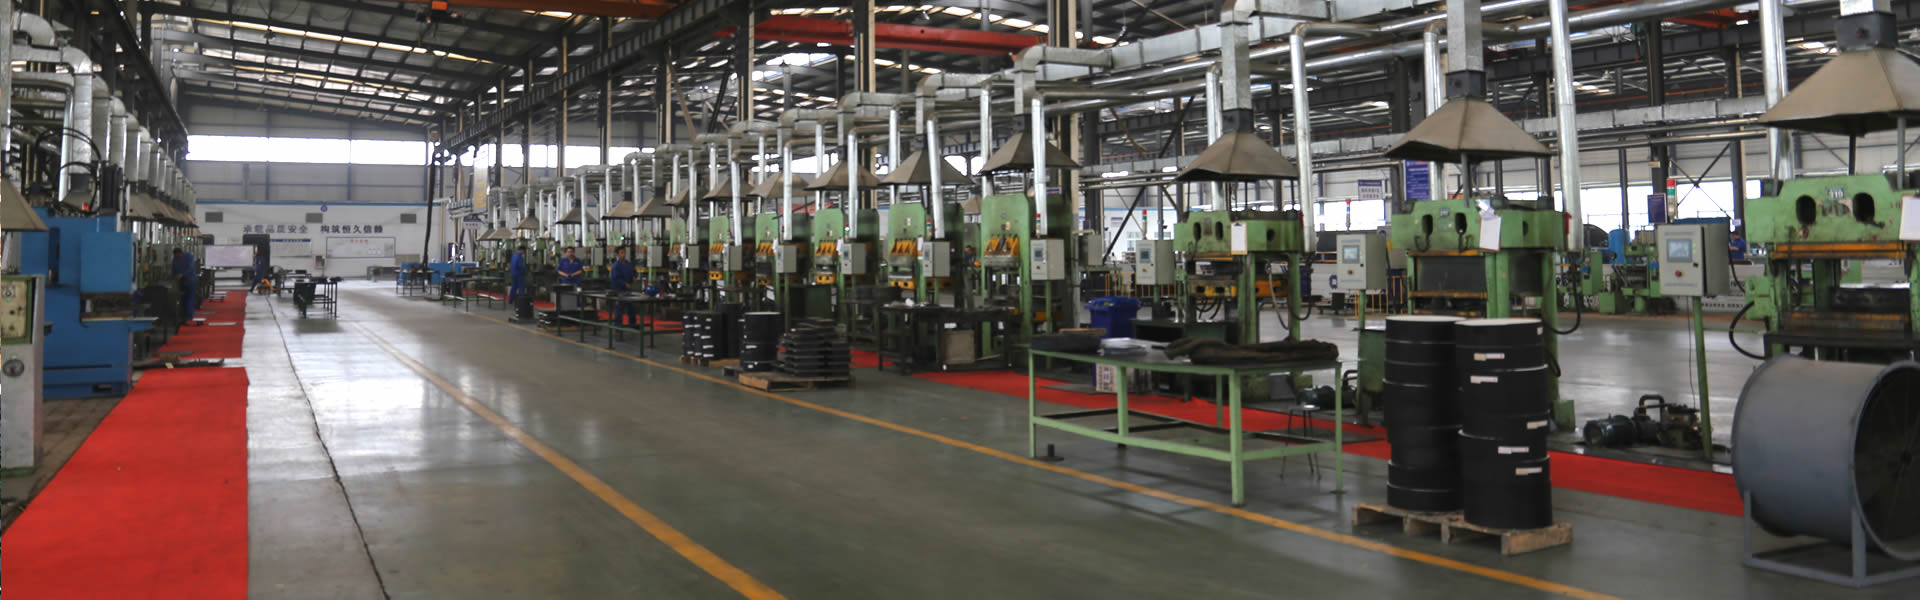 A large workshop with bridge bearing products and equipment in it.